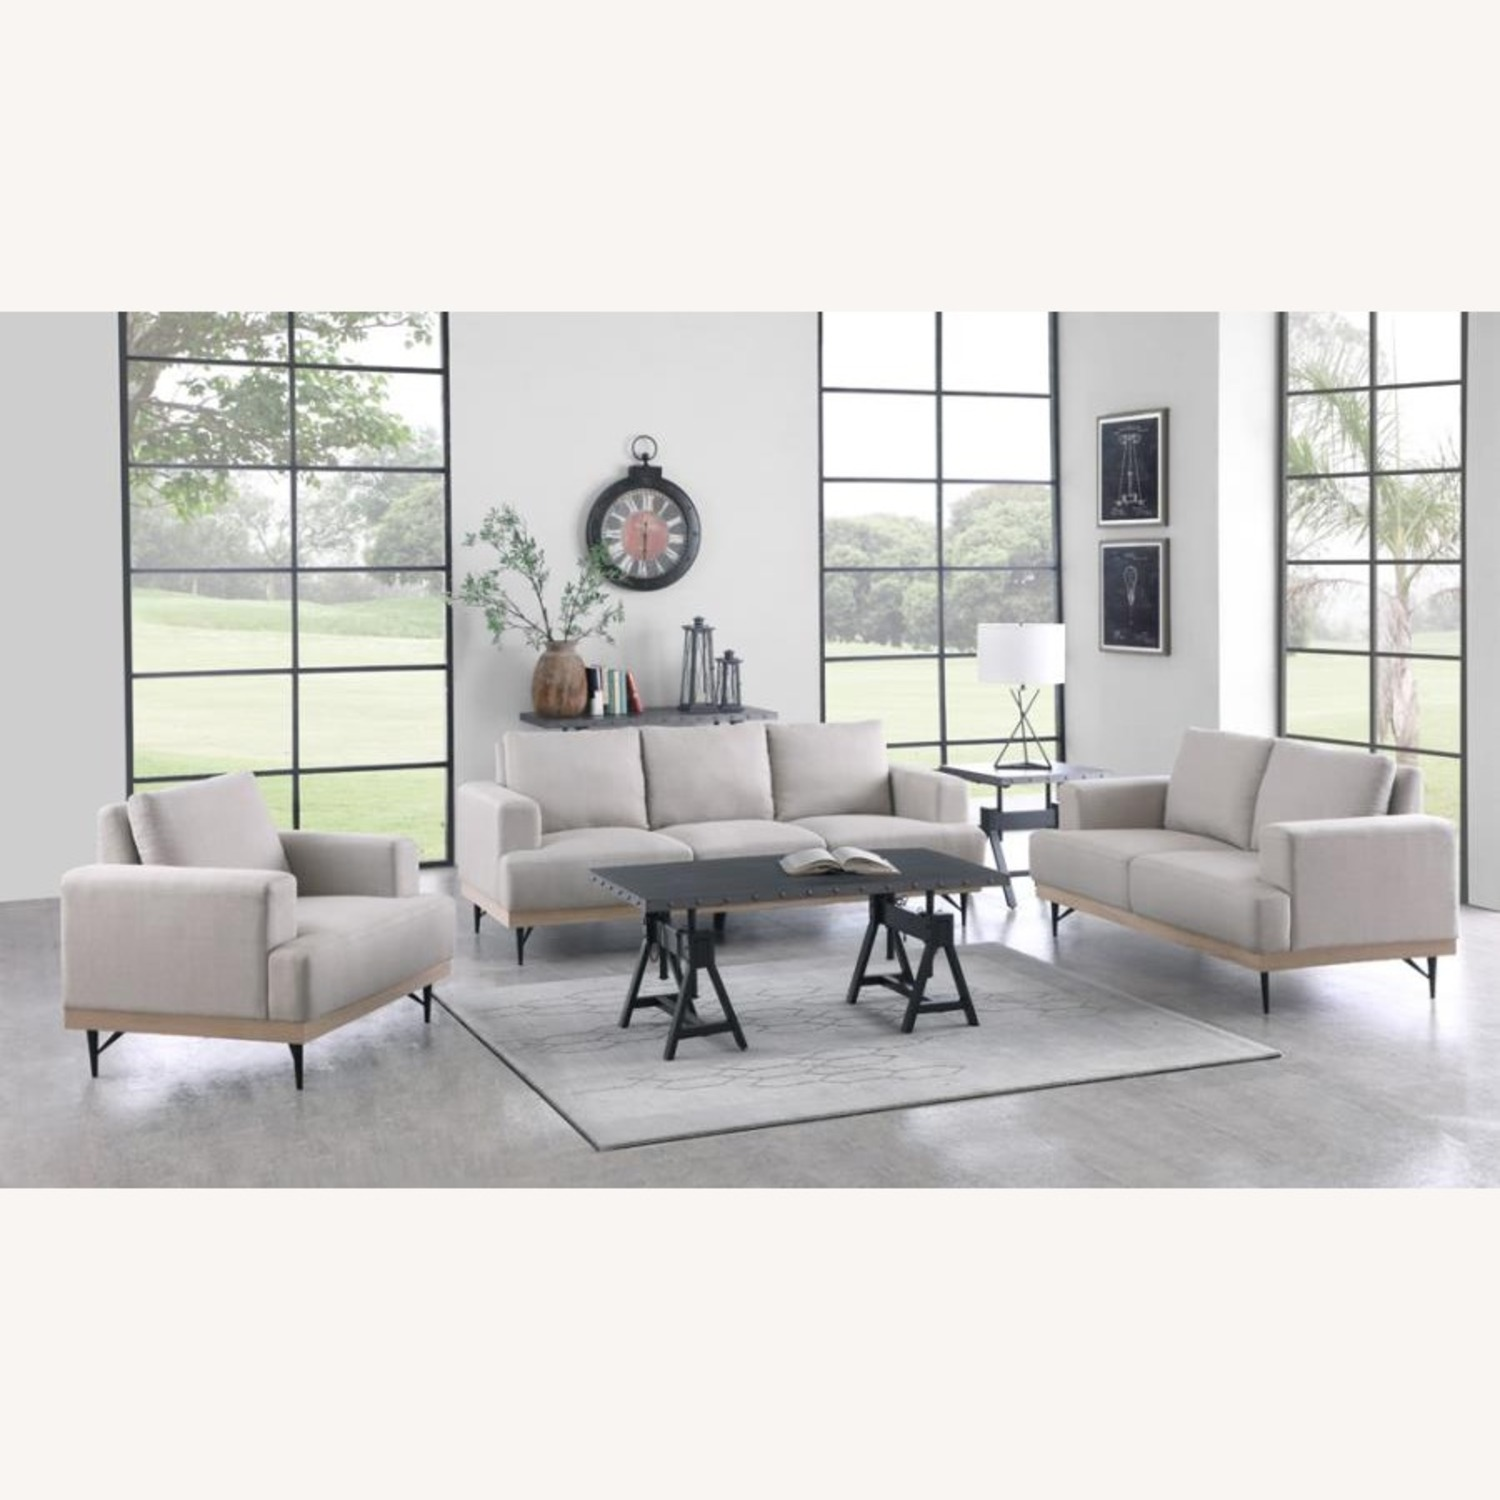 Chair In Beige Faux Linen W/ Pocket Coiled Seating - image-2